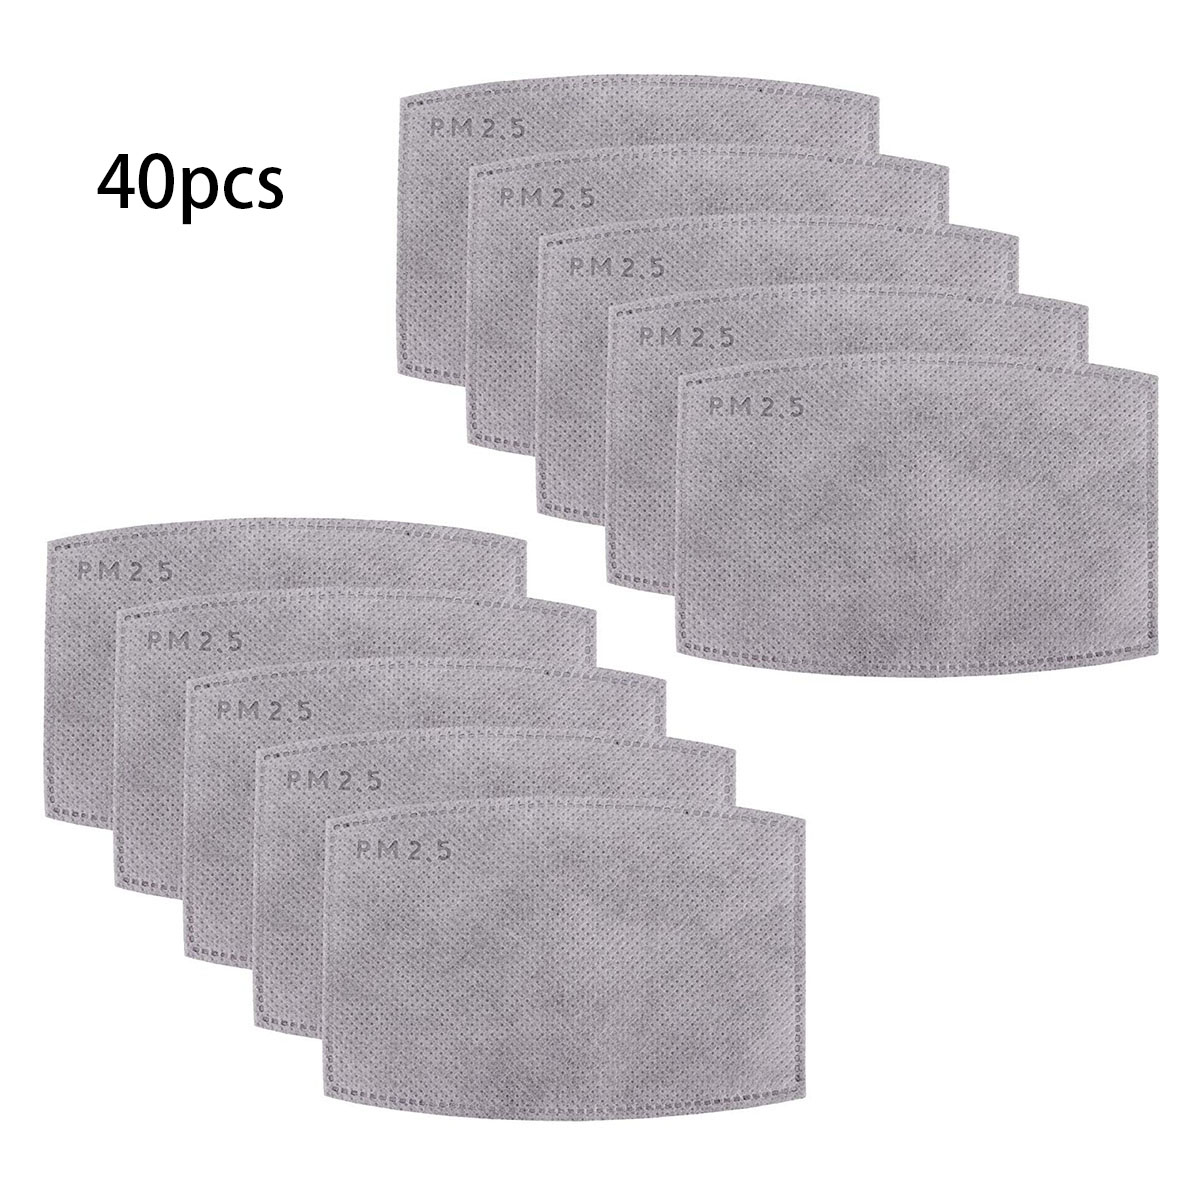 40/20/10pcs Fine Denier Face Mask Filter Inserts Cotton Mask Soft Wicking PM2.5 Filtration Filter Inserts Dust Mask